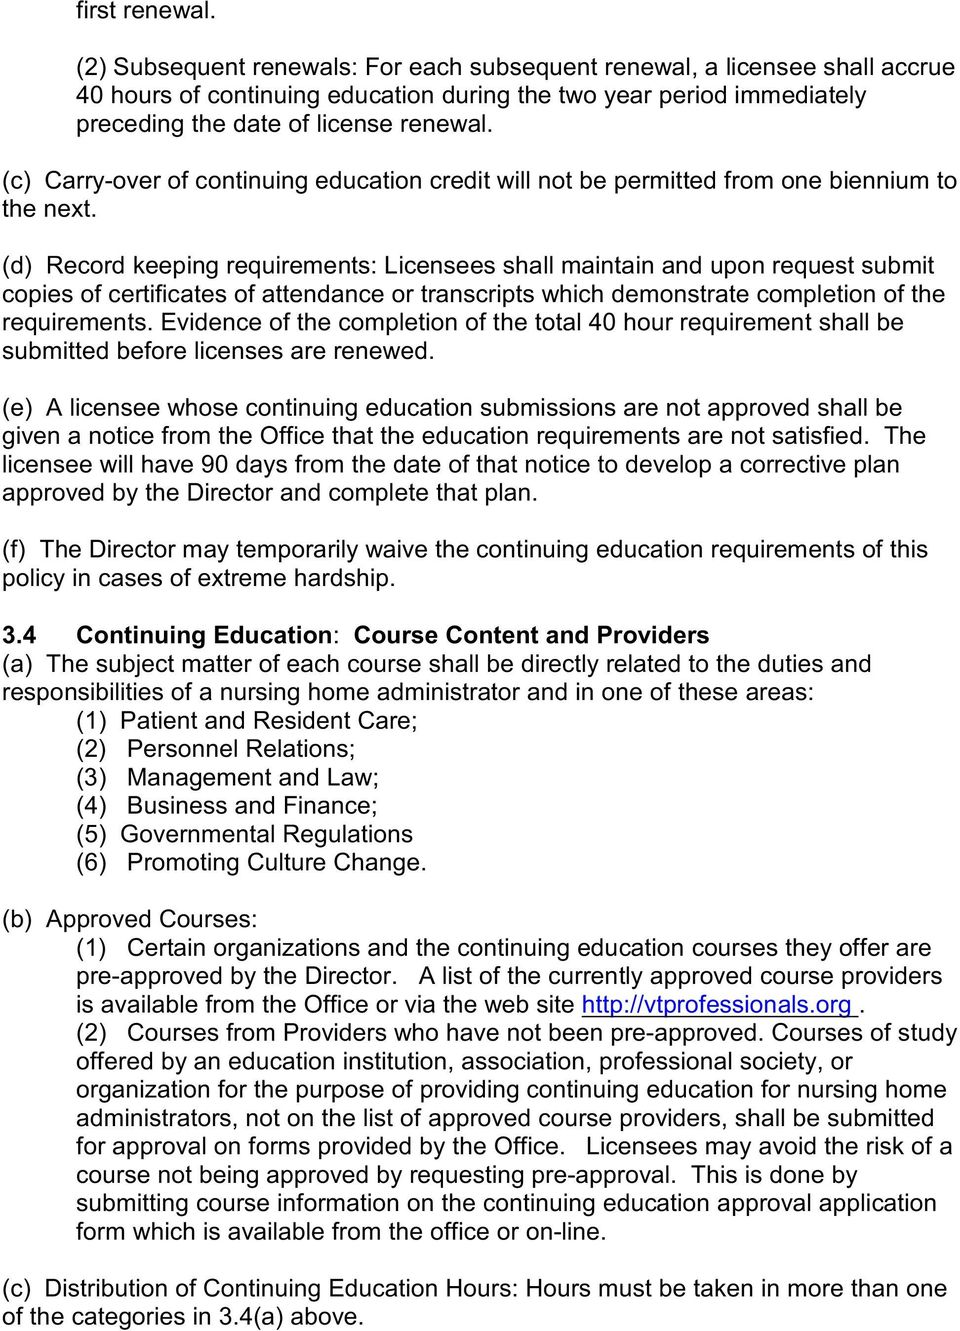 (c) Carry-over of continuing education credit will not be permitted from one biennium to the next.